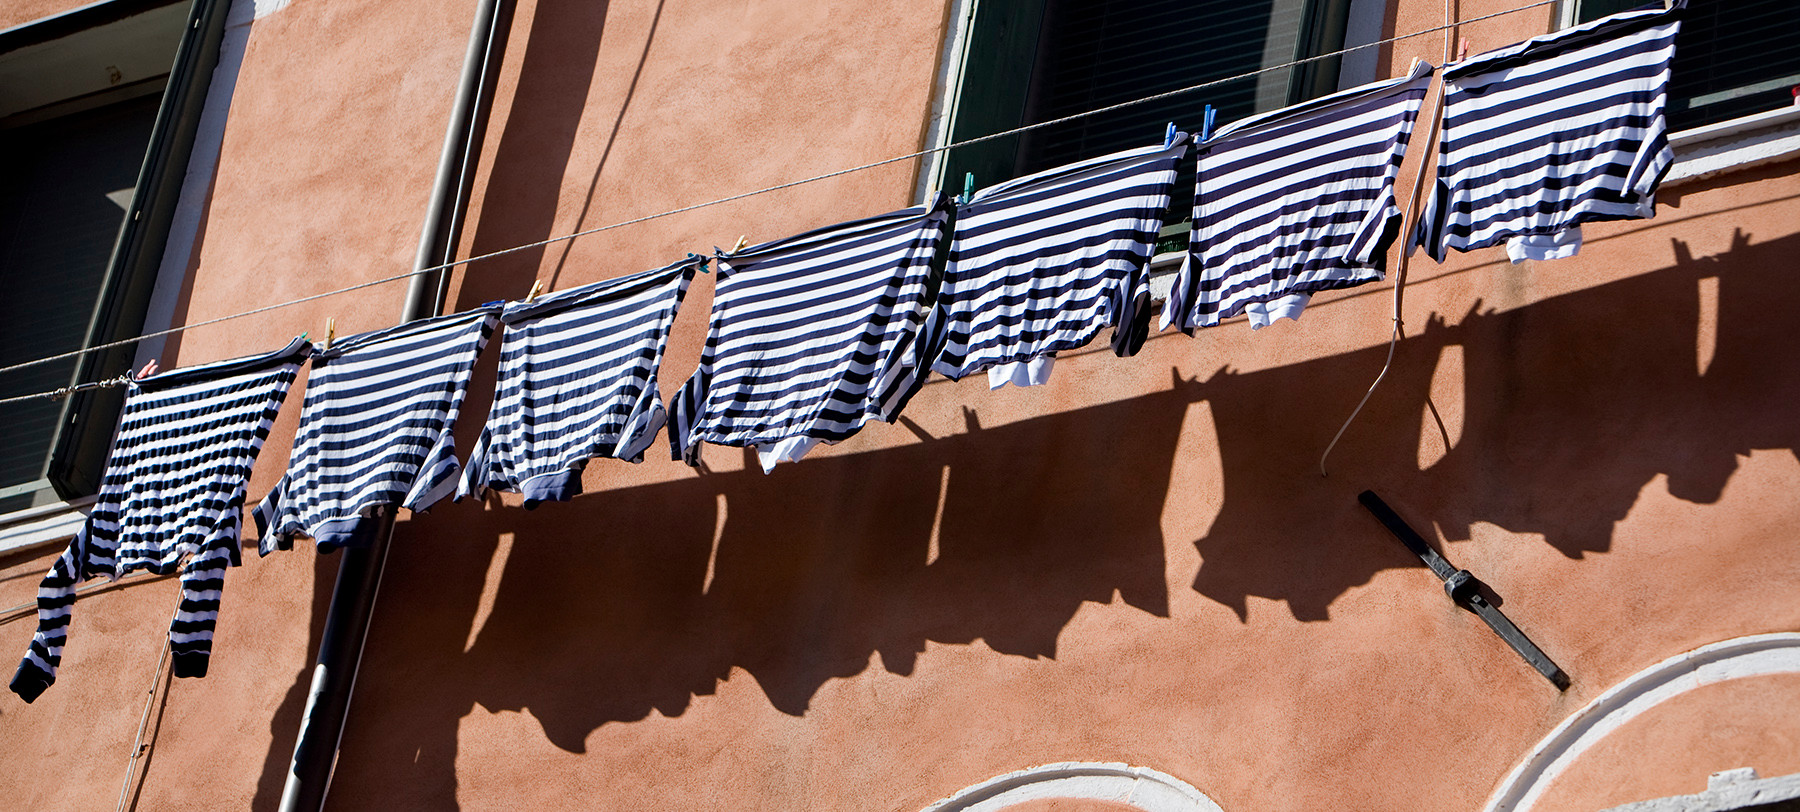 Goldoliers Shirts, Venice